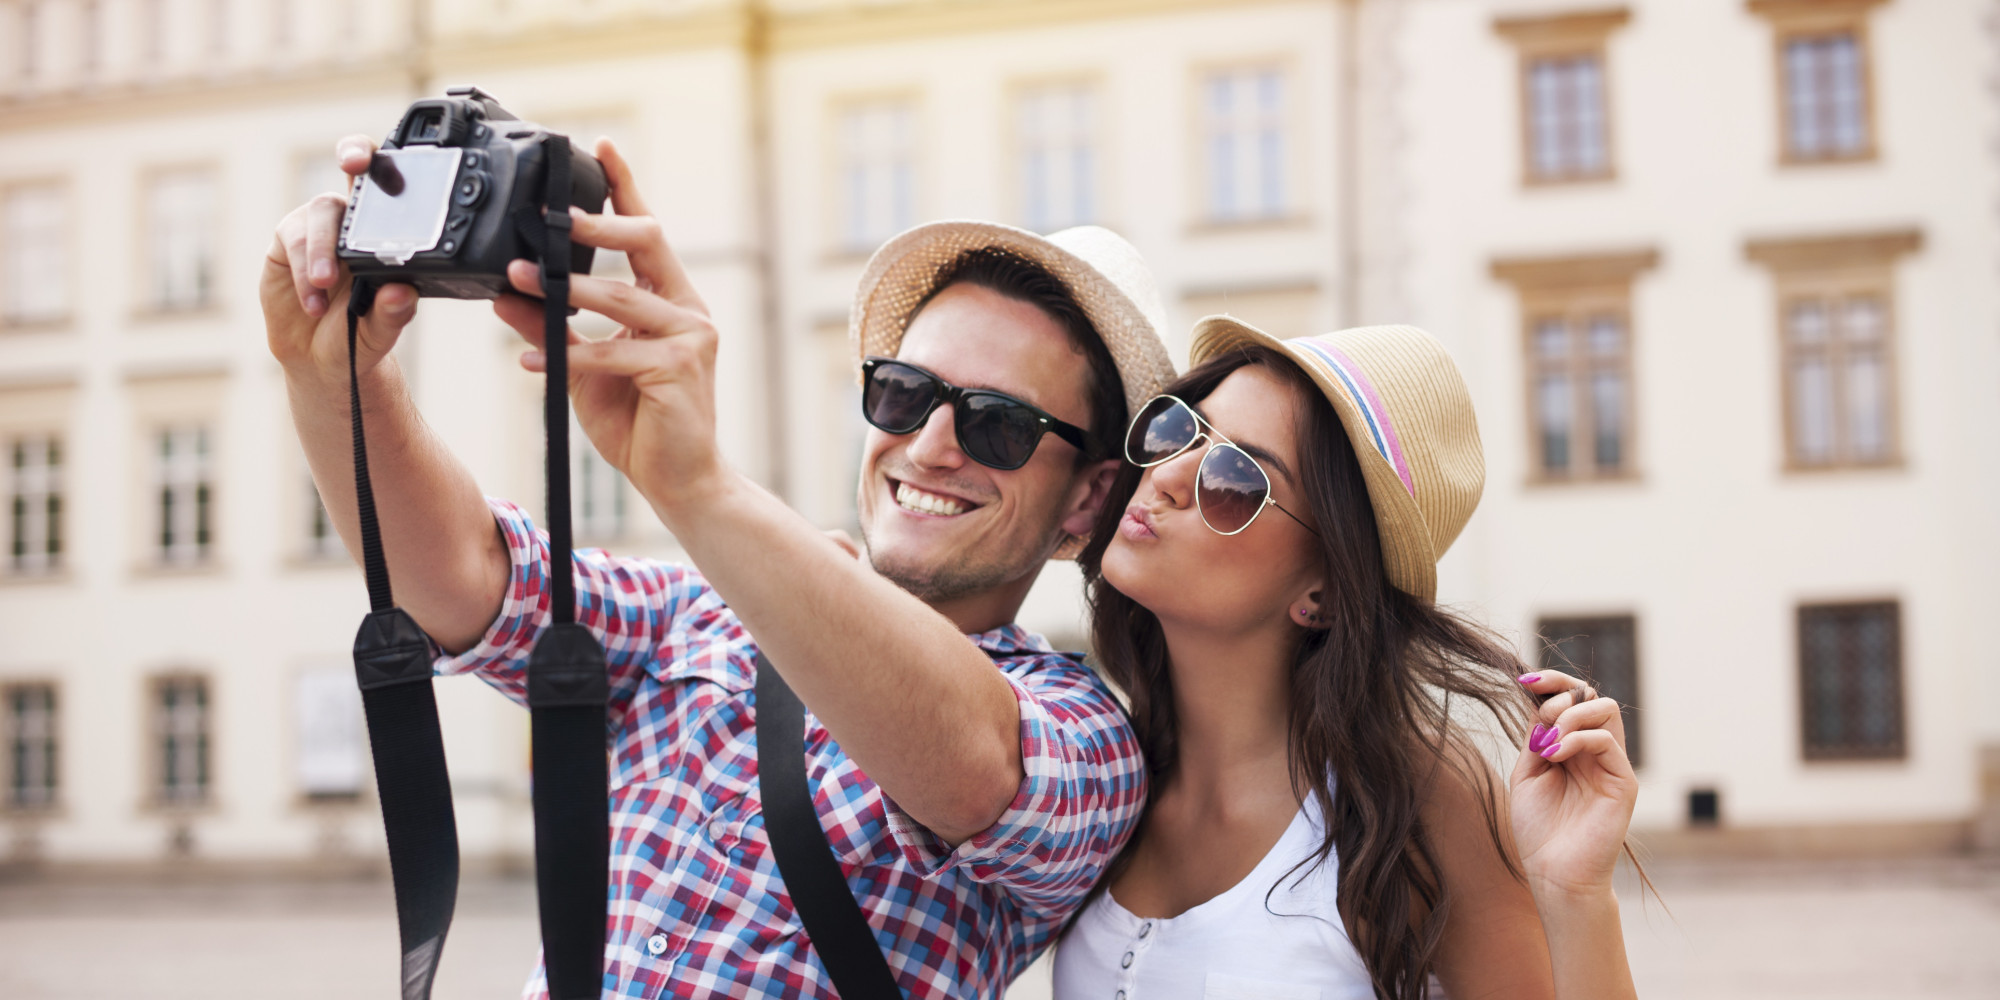 Happy tourists taking photo of themselves